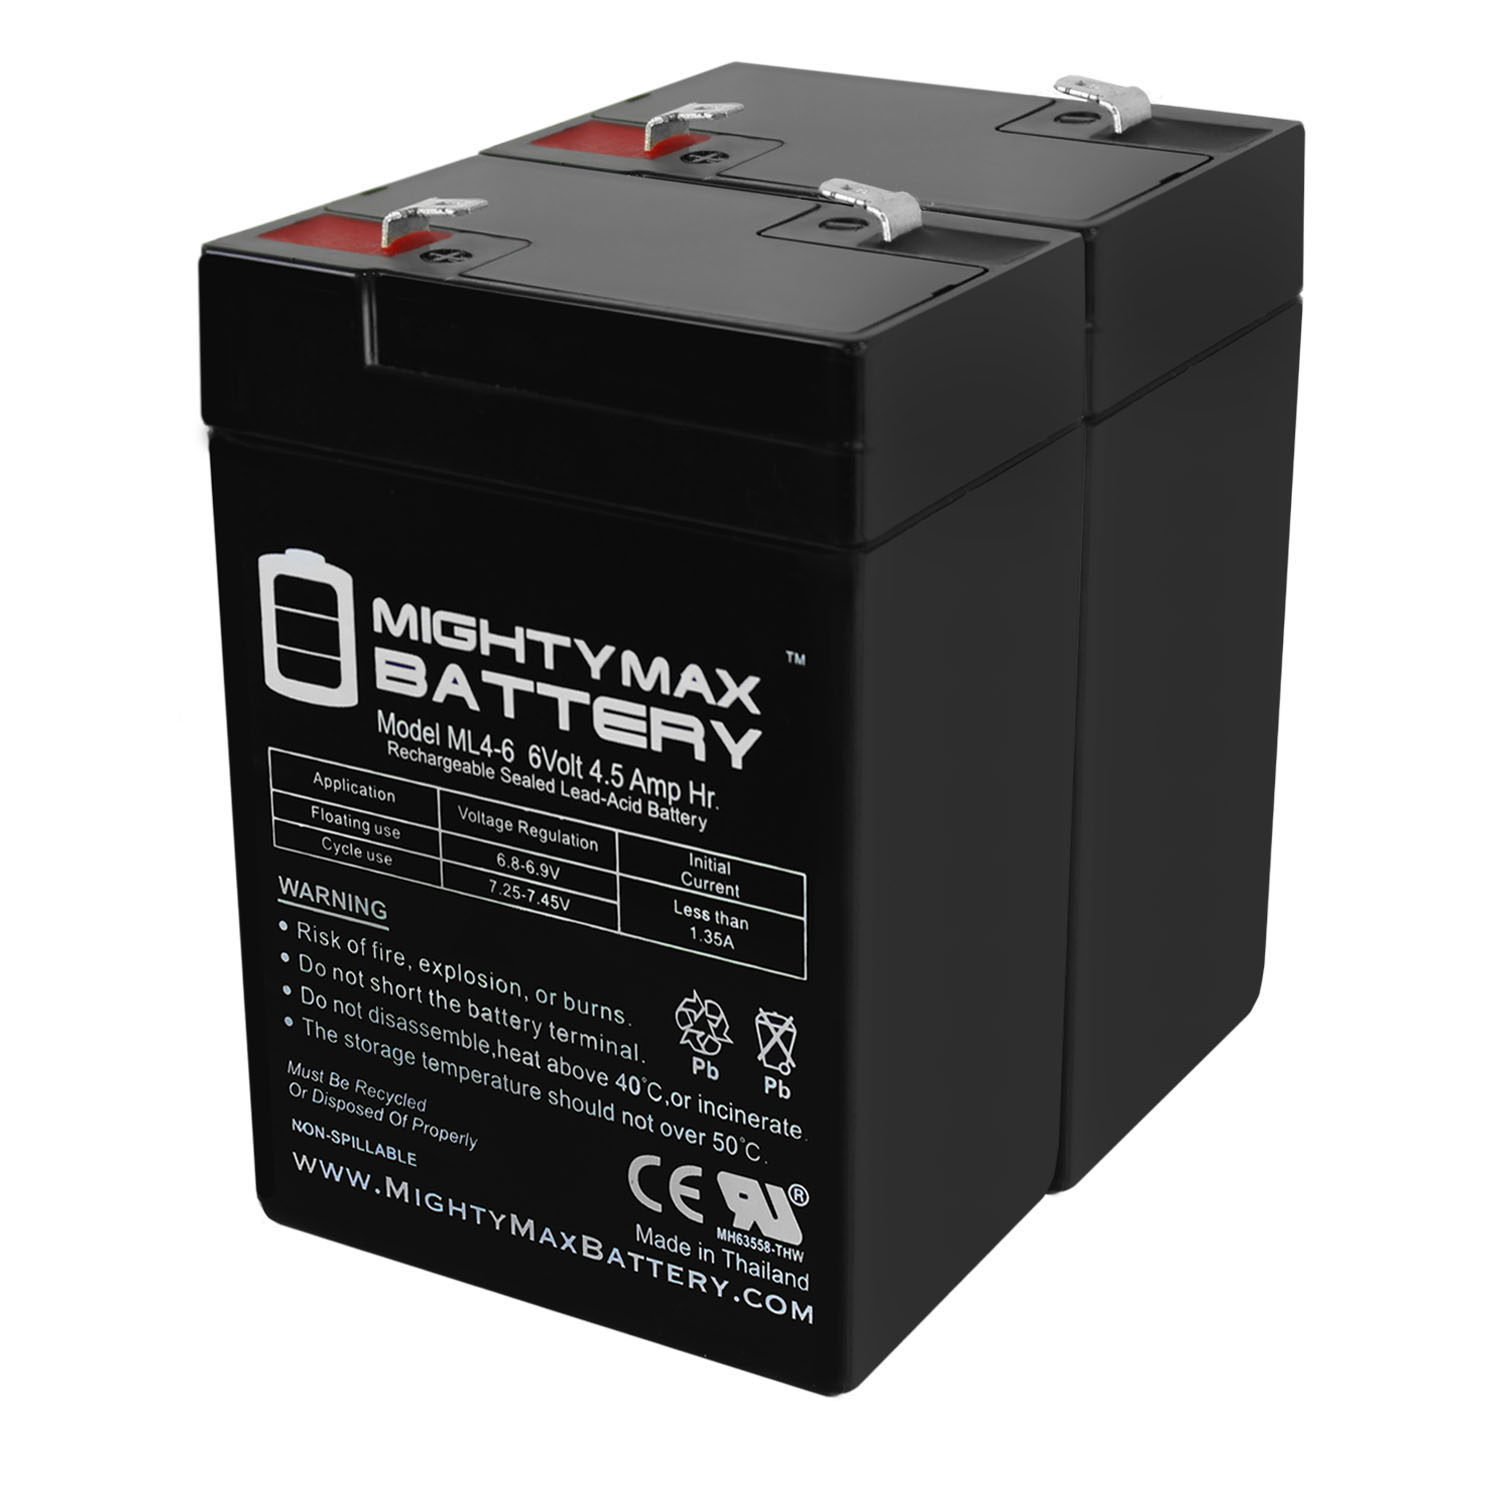 6V 4.5AH Battery for Kid Trax Disney Ride On Toy KT1123TR - 2 Pack